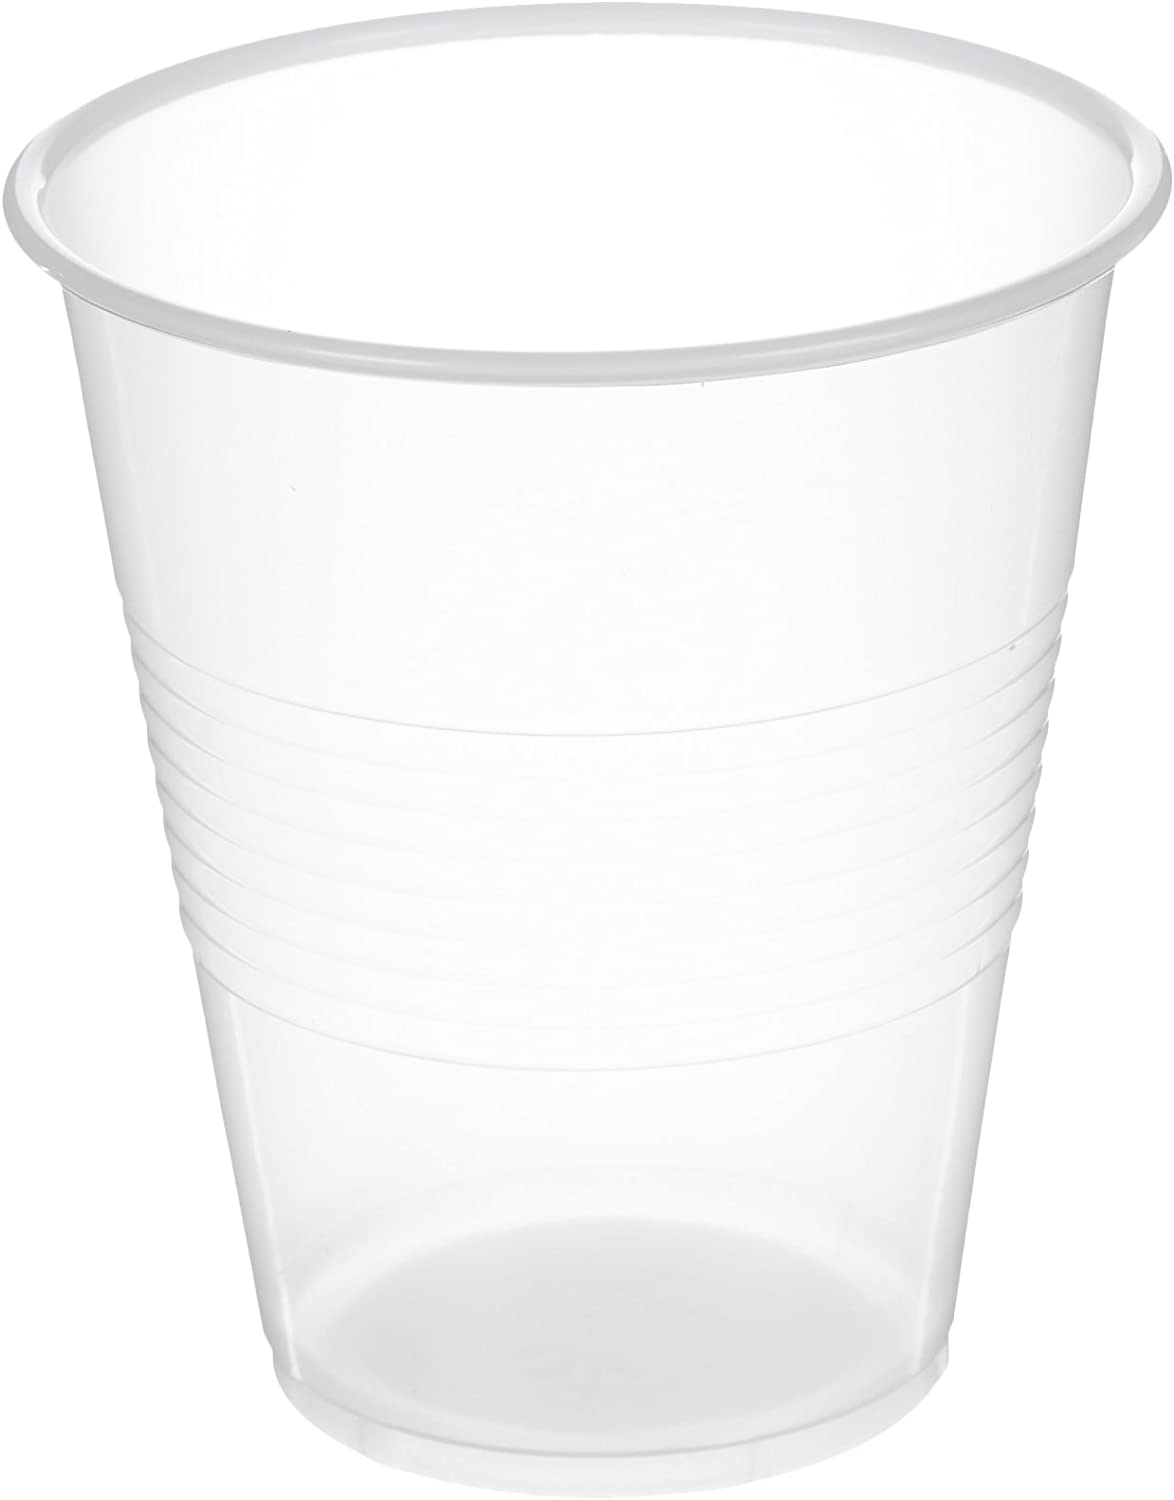 AmazonBasics Plastic Cups, Clear, 7 Ounce, Pack of 100